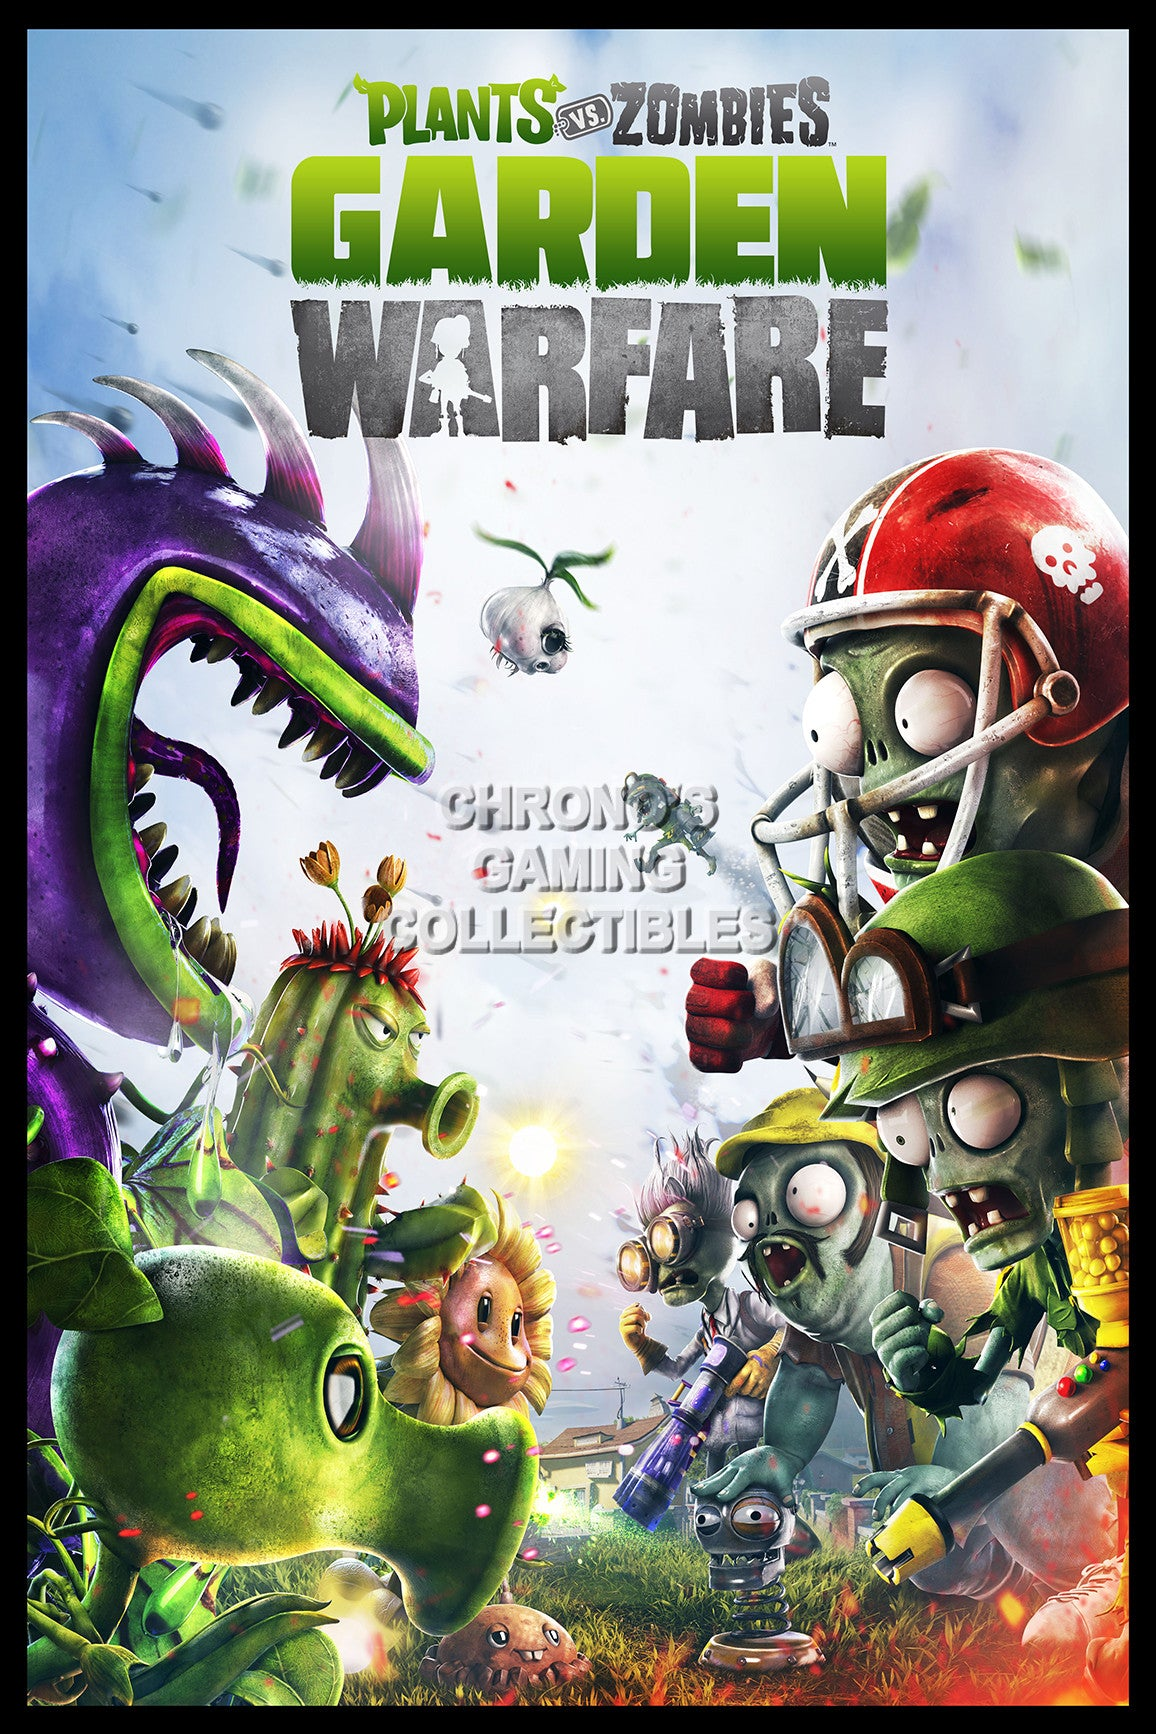 Plants vs zombies garden warfare video games poster - Plants vs zombies garden warfare xbox one ...